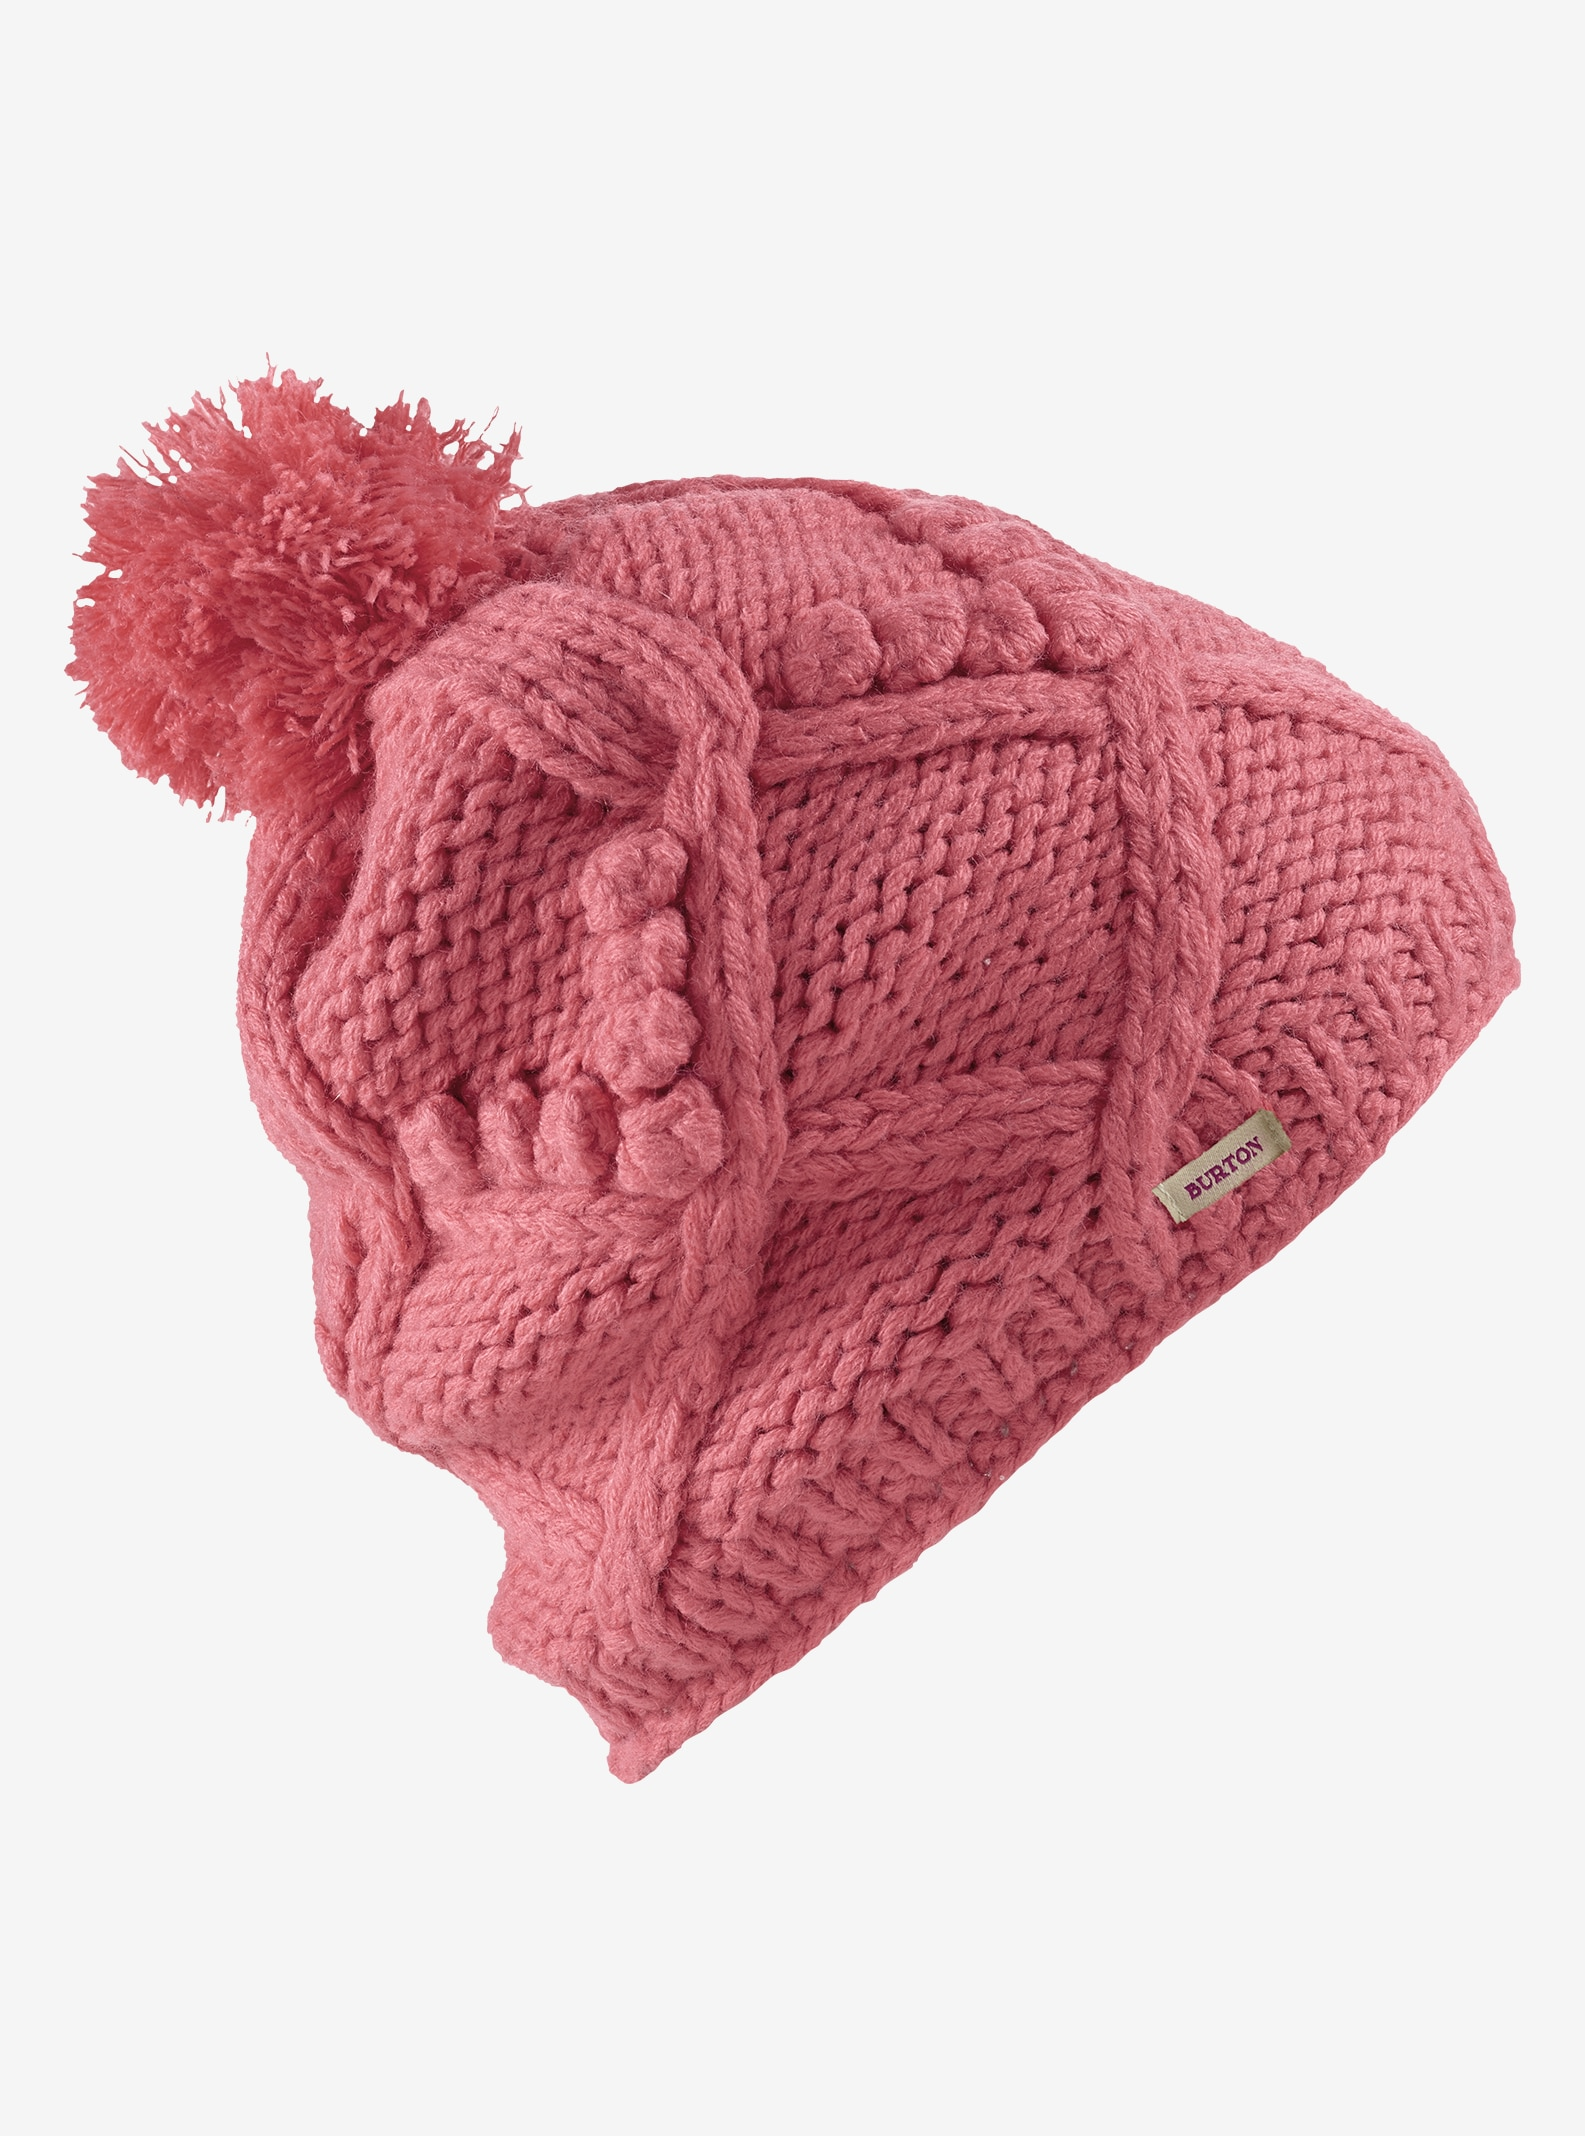 Women's Burton Chloe Beanie shown in Dusty Rose